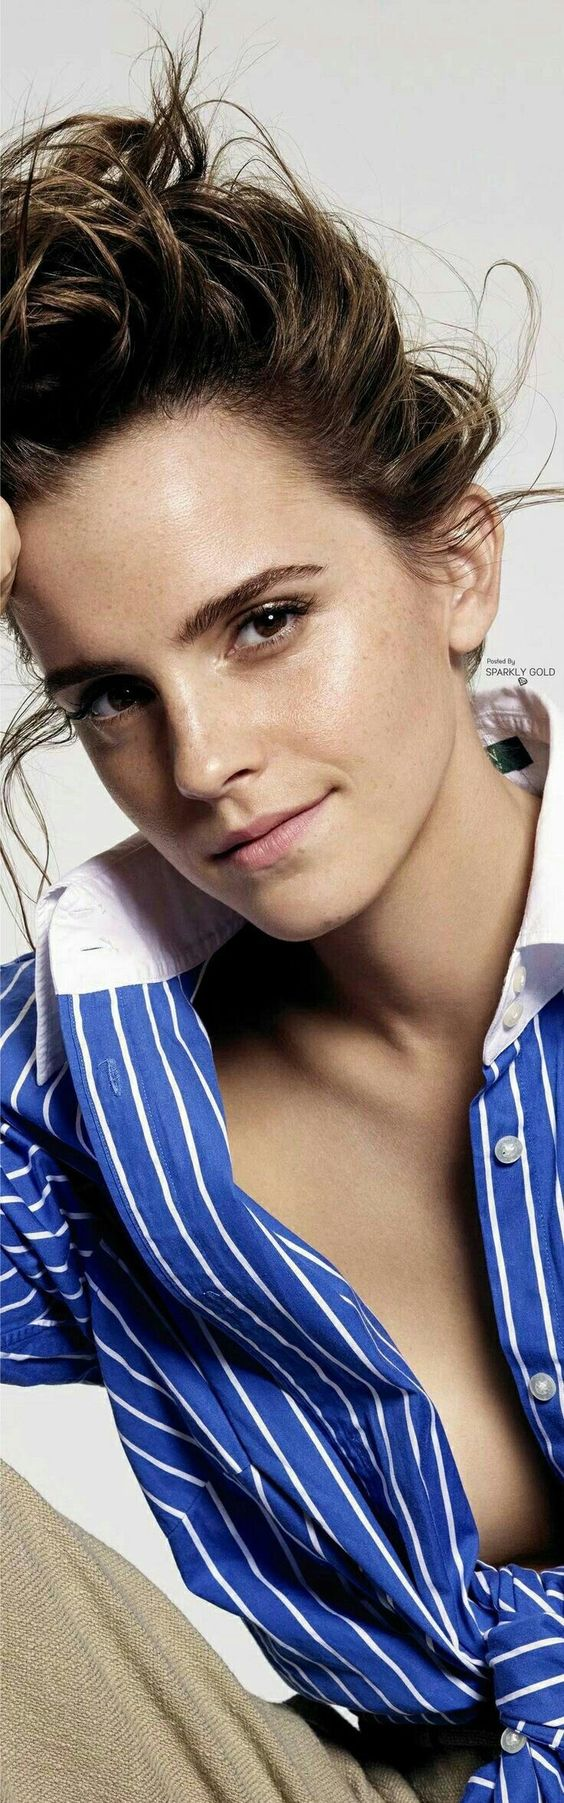 Emma Watson on Photoshoot